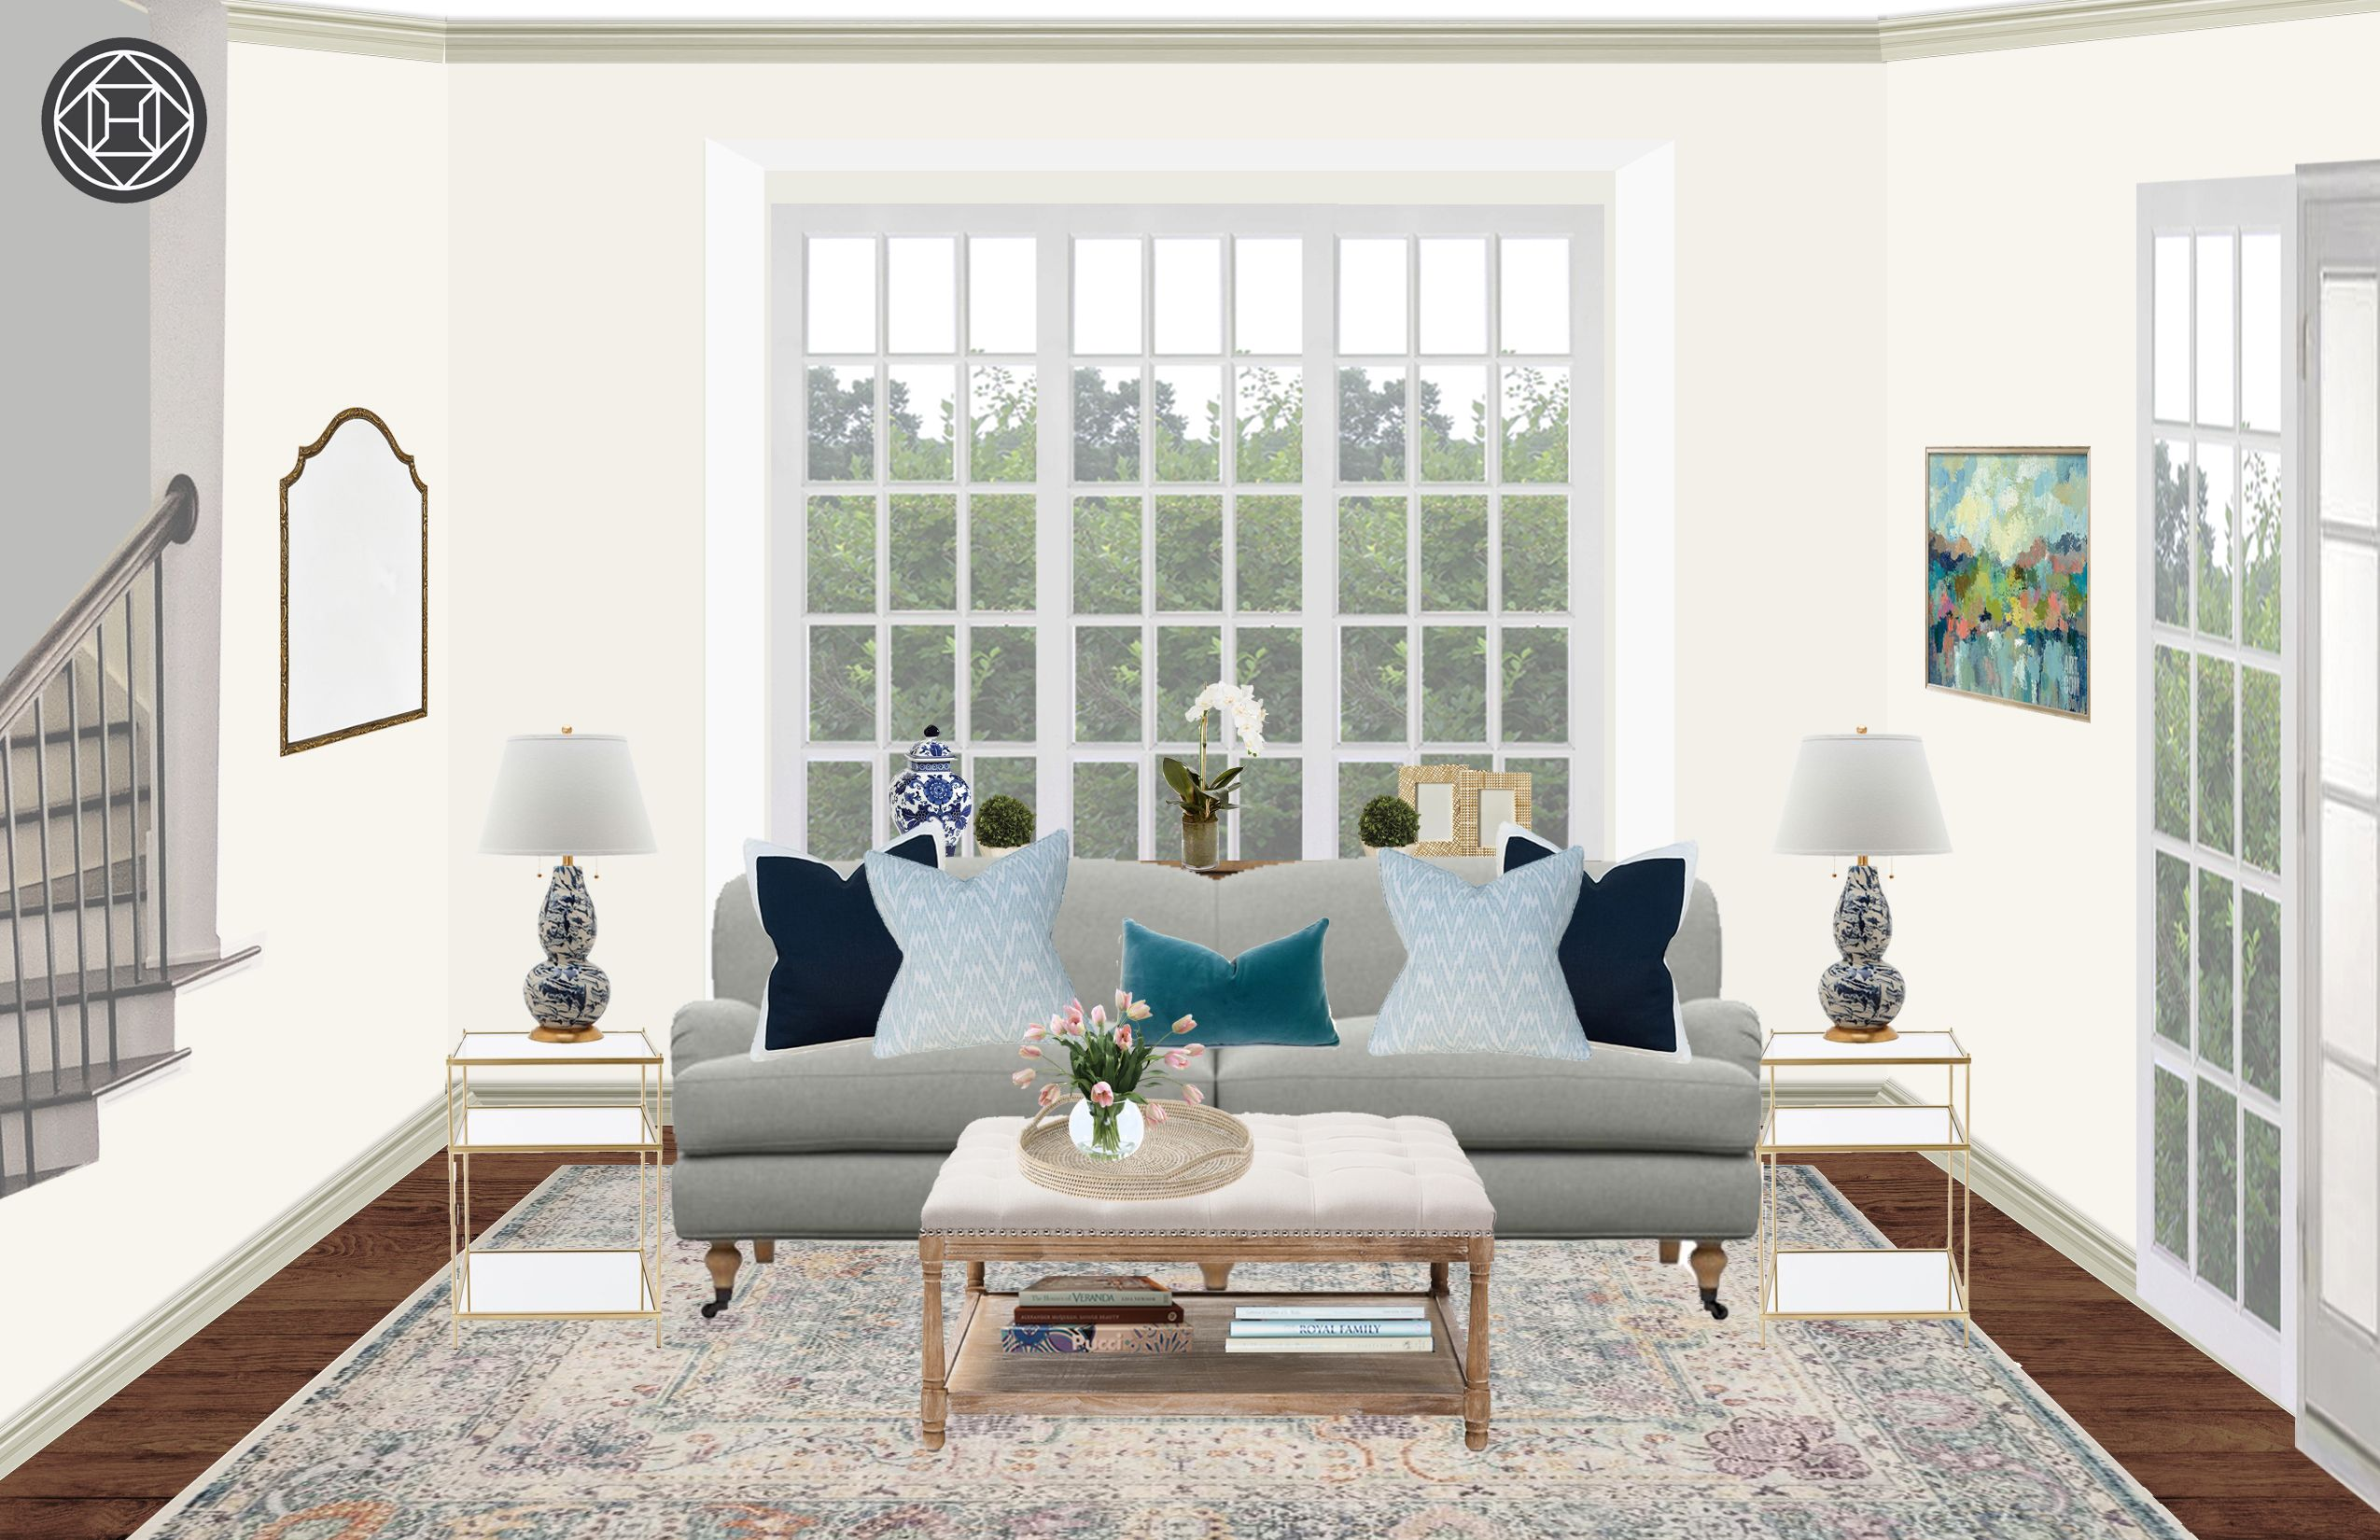 Classic Traditional Transitional Preppy Living Room Design By Havenly Interior Designer Tara Traditional Style Living Room Preppy Living Room Living Room Designs #traditional #interior #design #living #room